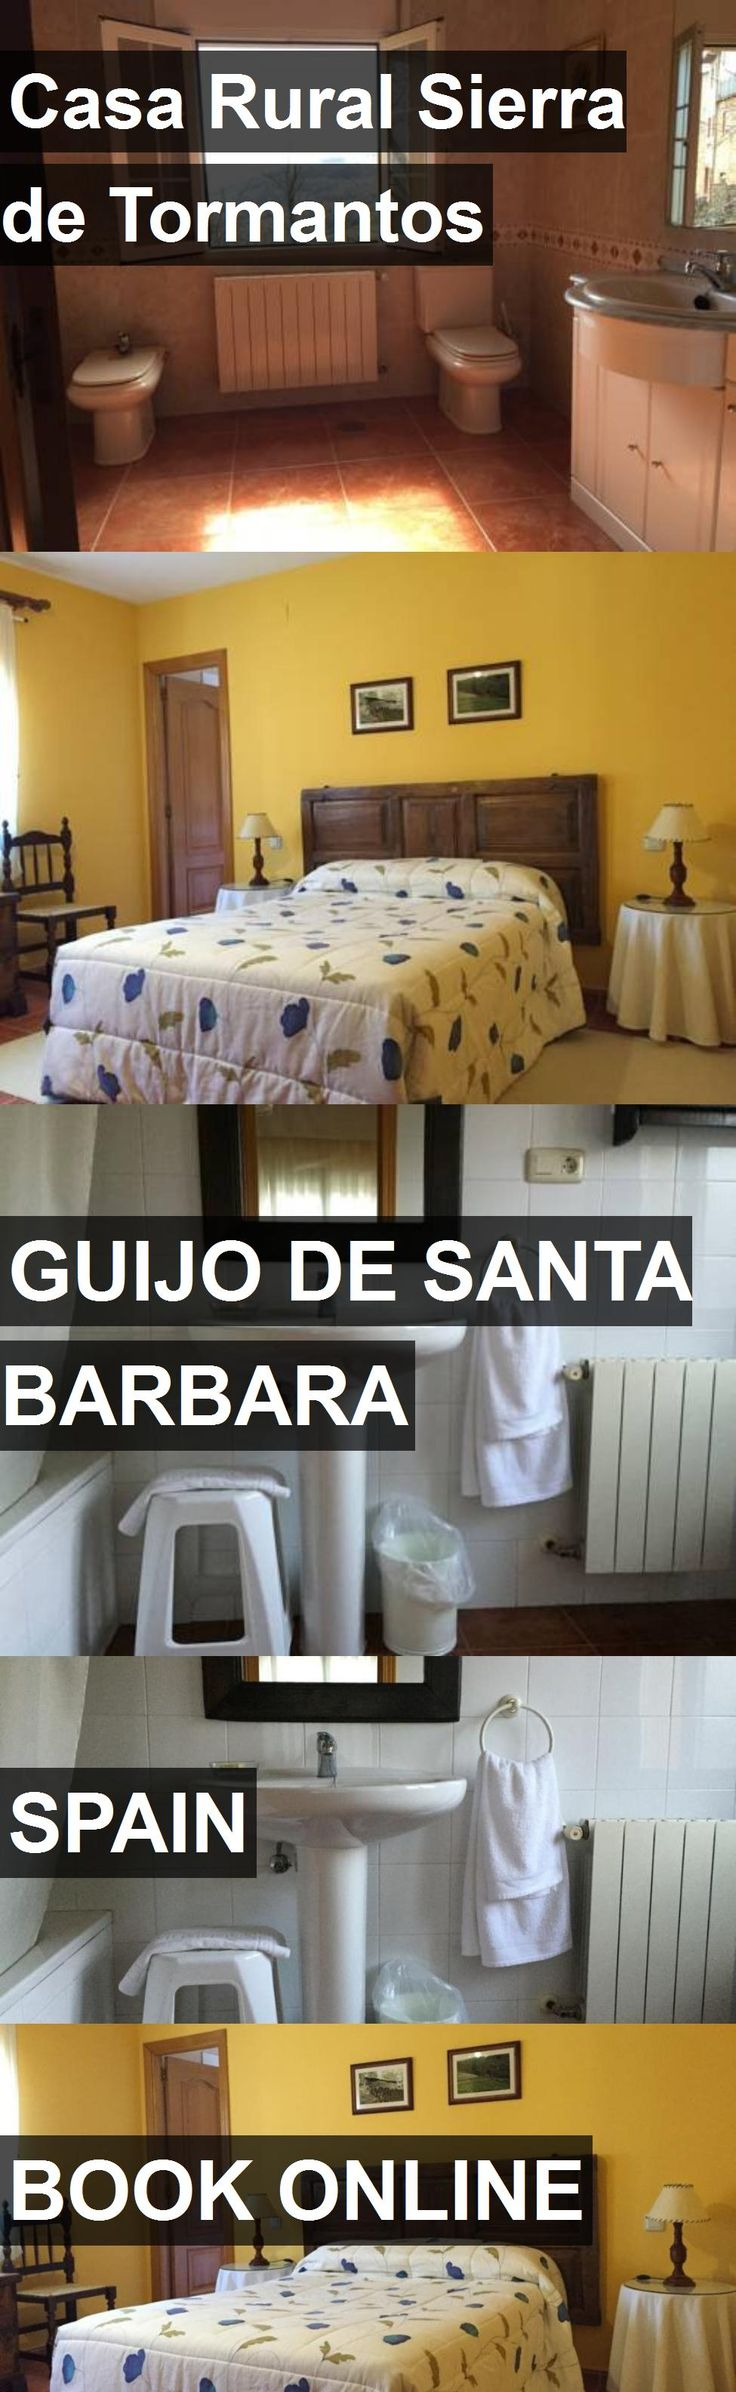 Hotel Casa Rural Sierra de Tormantos in Guijo de Santa Barbara, Spain. For more information, photos, reviews and best prices please follow the link. #Spain #GuijodeSantaBarbara #CasaRuralSierradeTormantos #hotel #travel #vacation